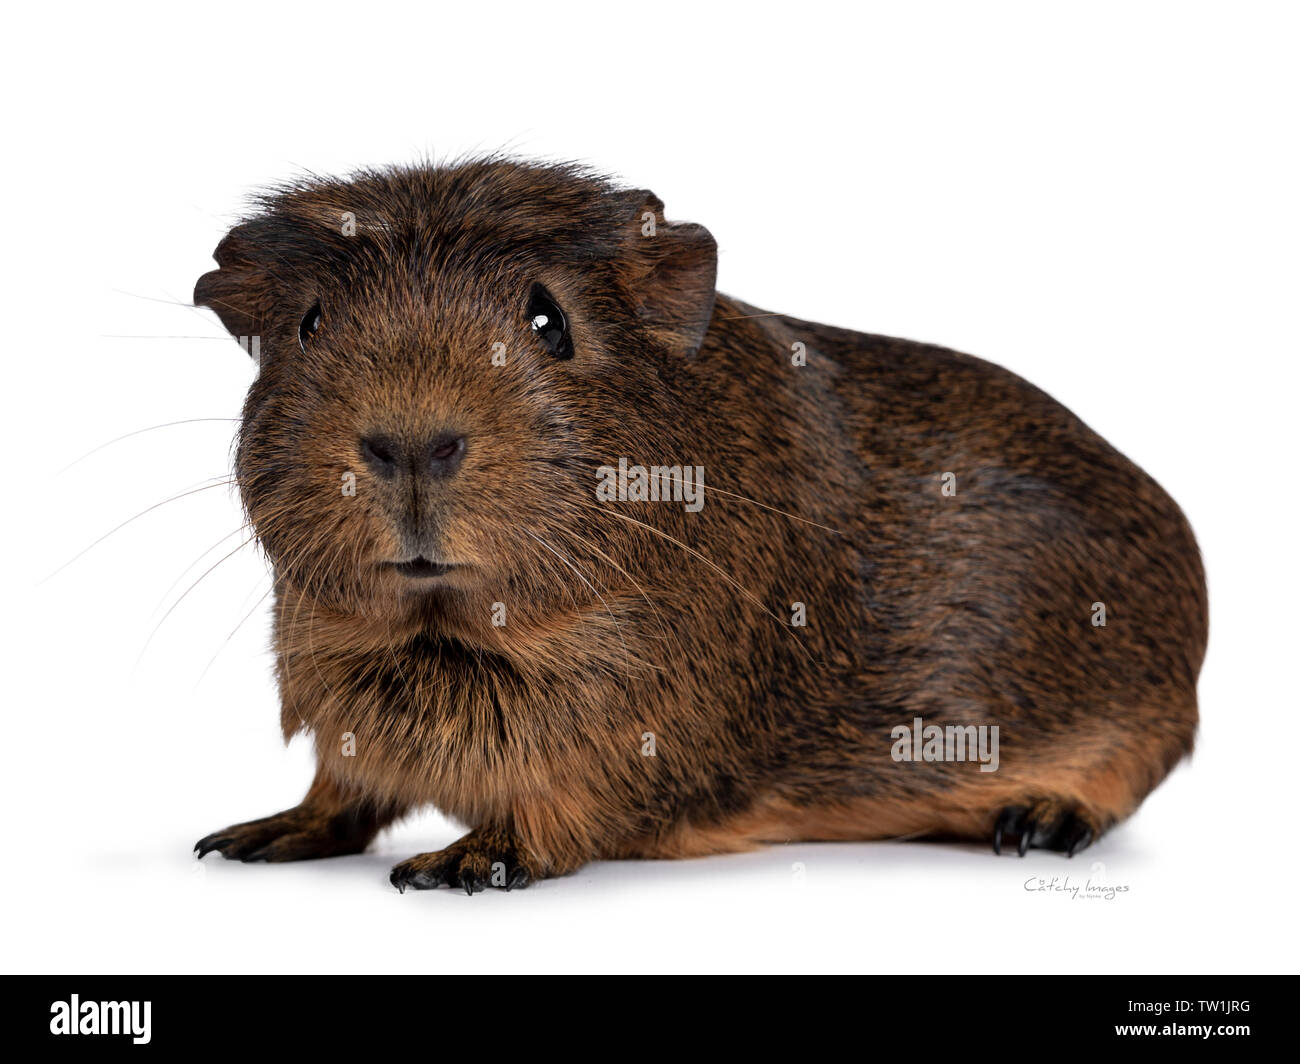 Cute crested cavy, standing side ways. Looking towards camera. Isolated on white background. - Stock Image